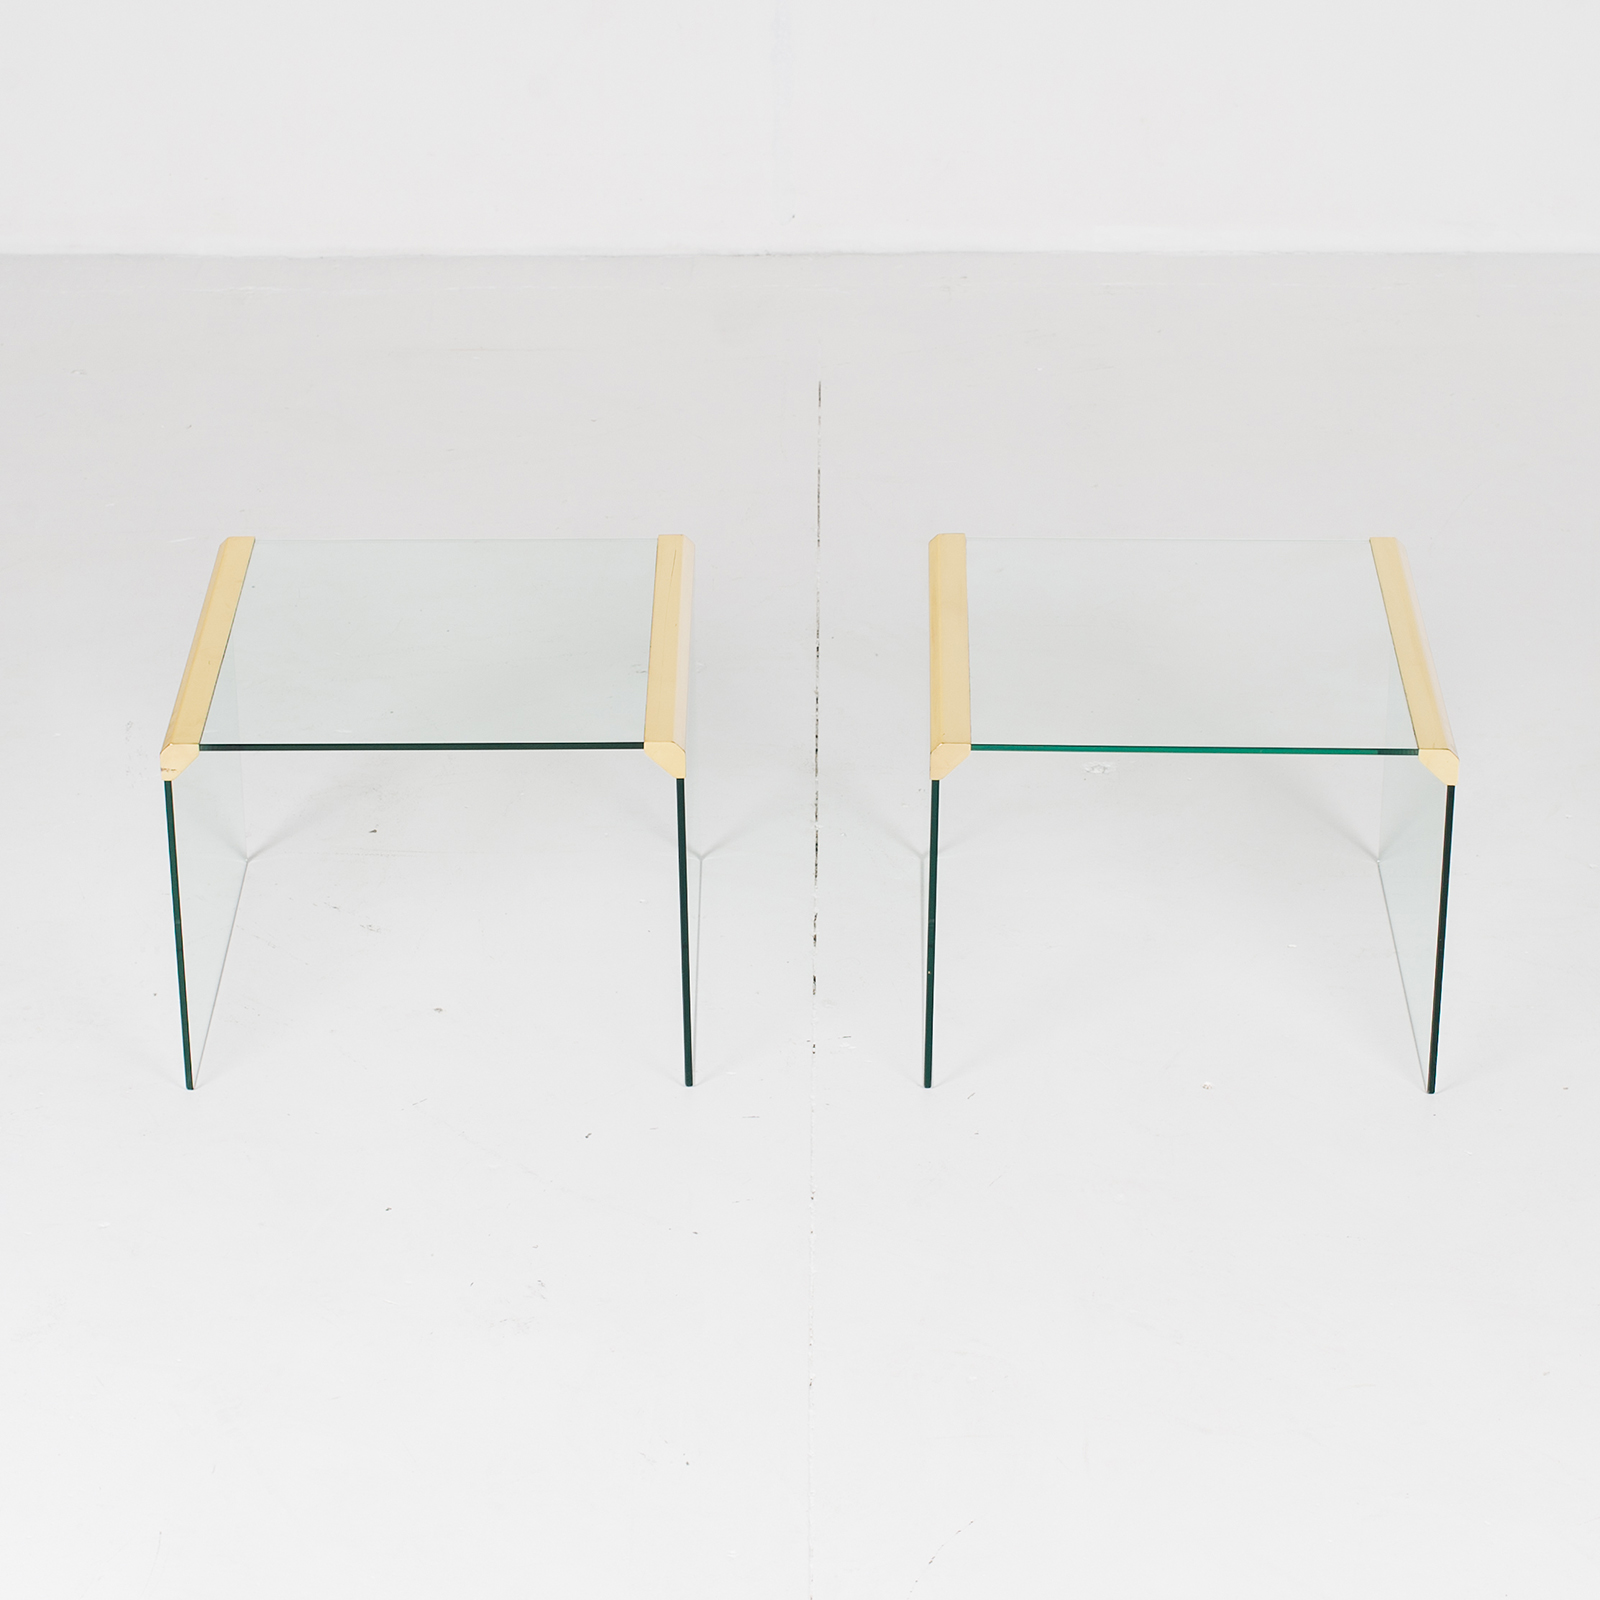 Waterfall Side Table By Pace In Glass And Anodised Brass, 1970s, United States11